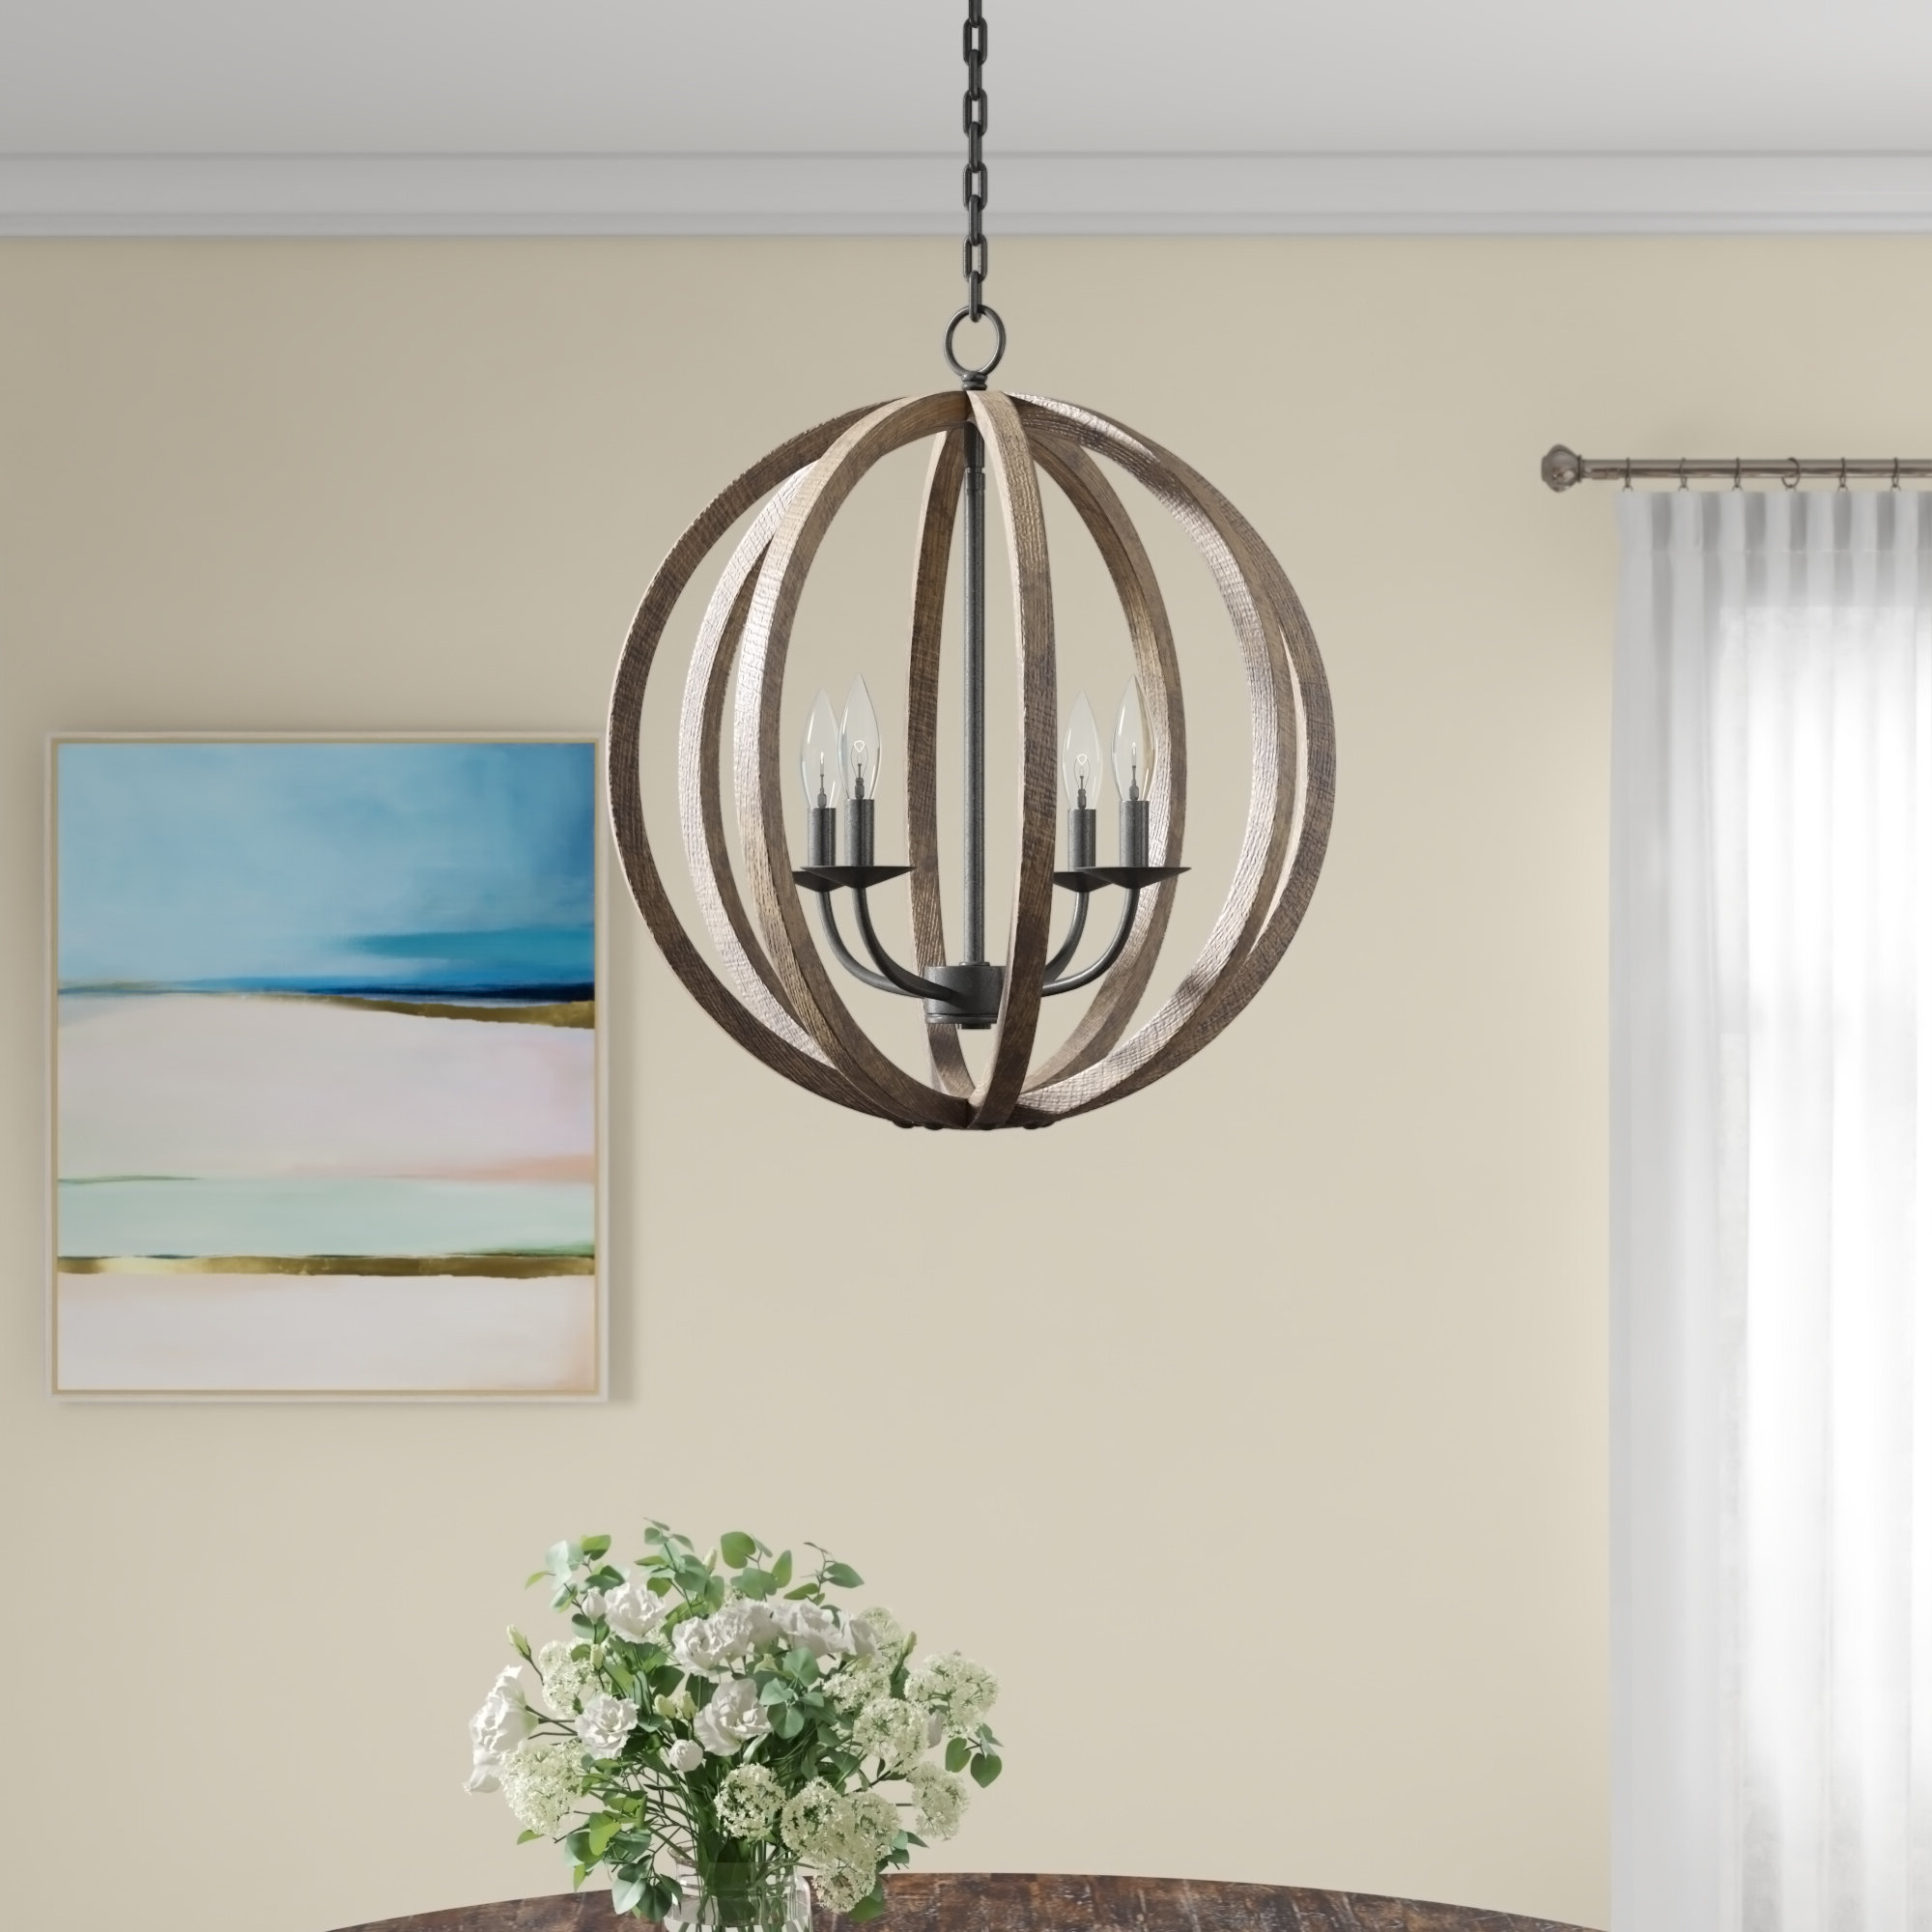 Donna 4 Light Globe Chandeliers Throughout Latest Ricciardo 4 Light Globe Chandelier (View 10 of 25)